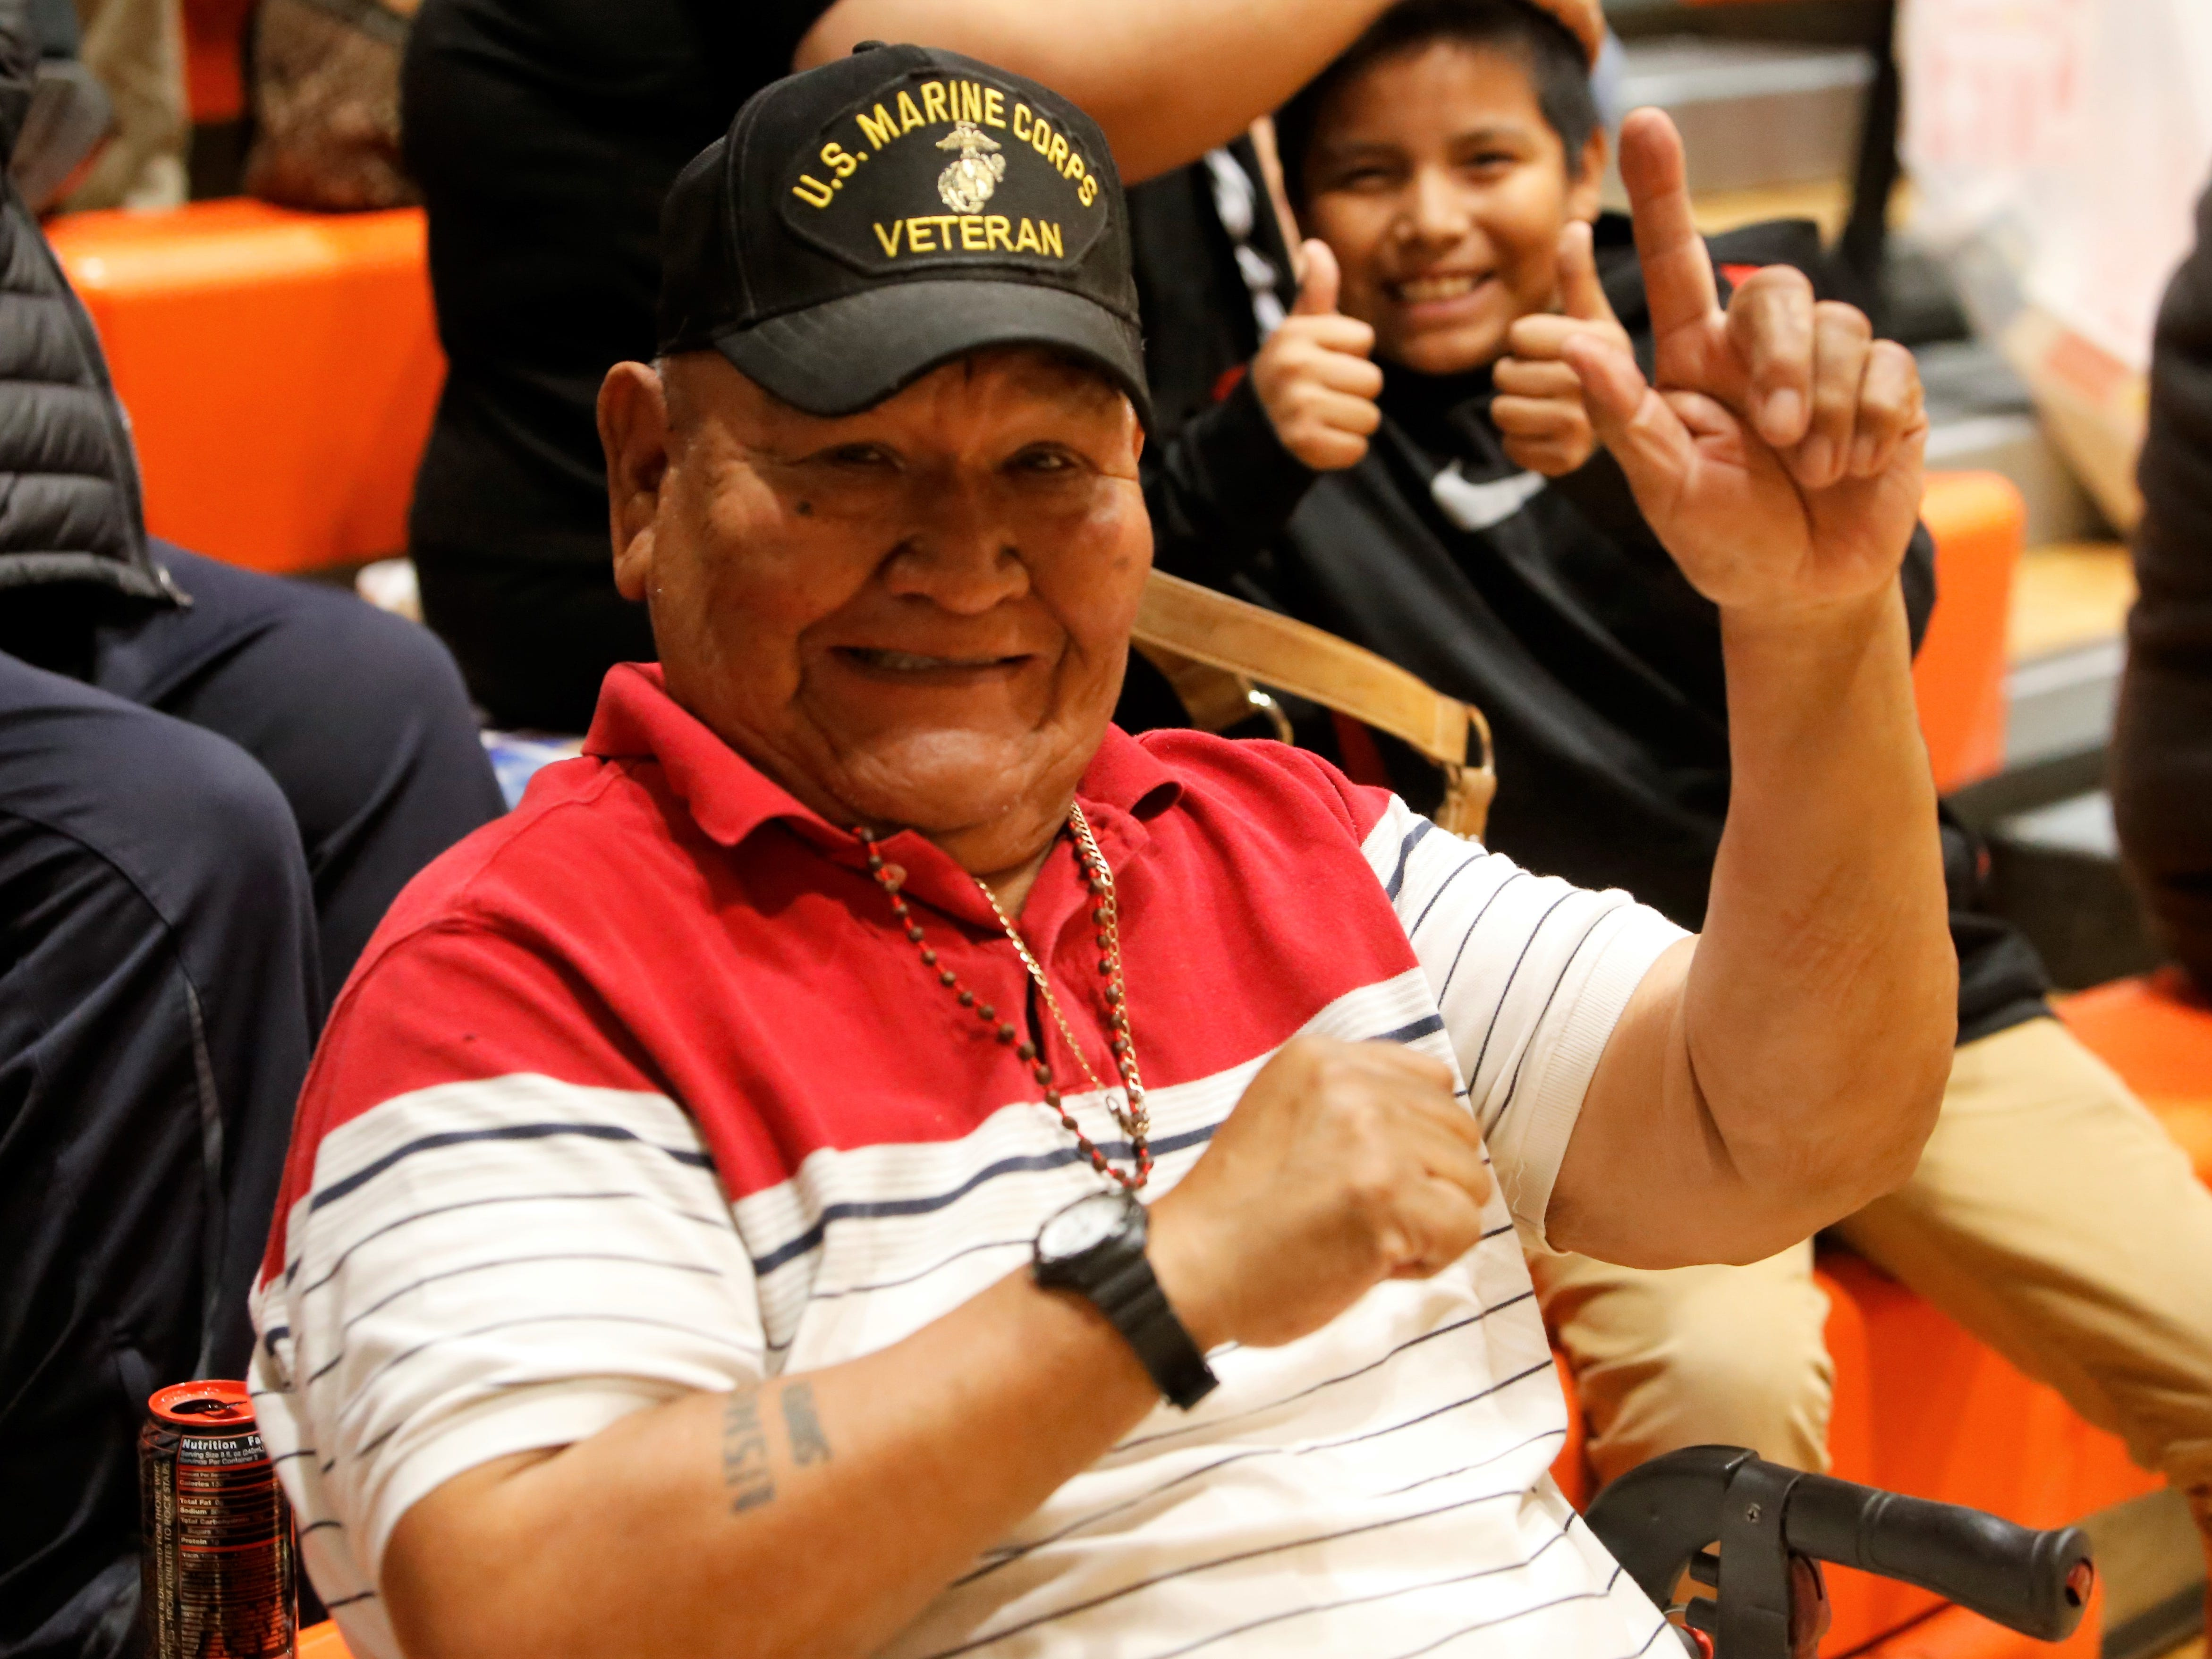 Former United States Marine Corps. Sergeant Robert Smart of Shiprock is all smiles during Friday's District 1-4A game between Aztec and Kirtland Central at Lillywhite Gym in Aztec.